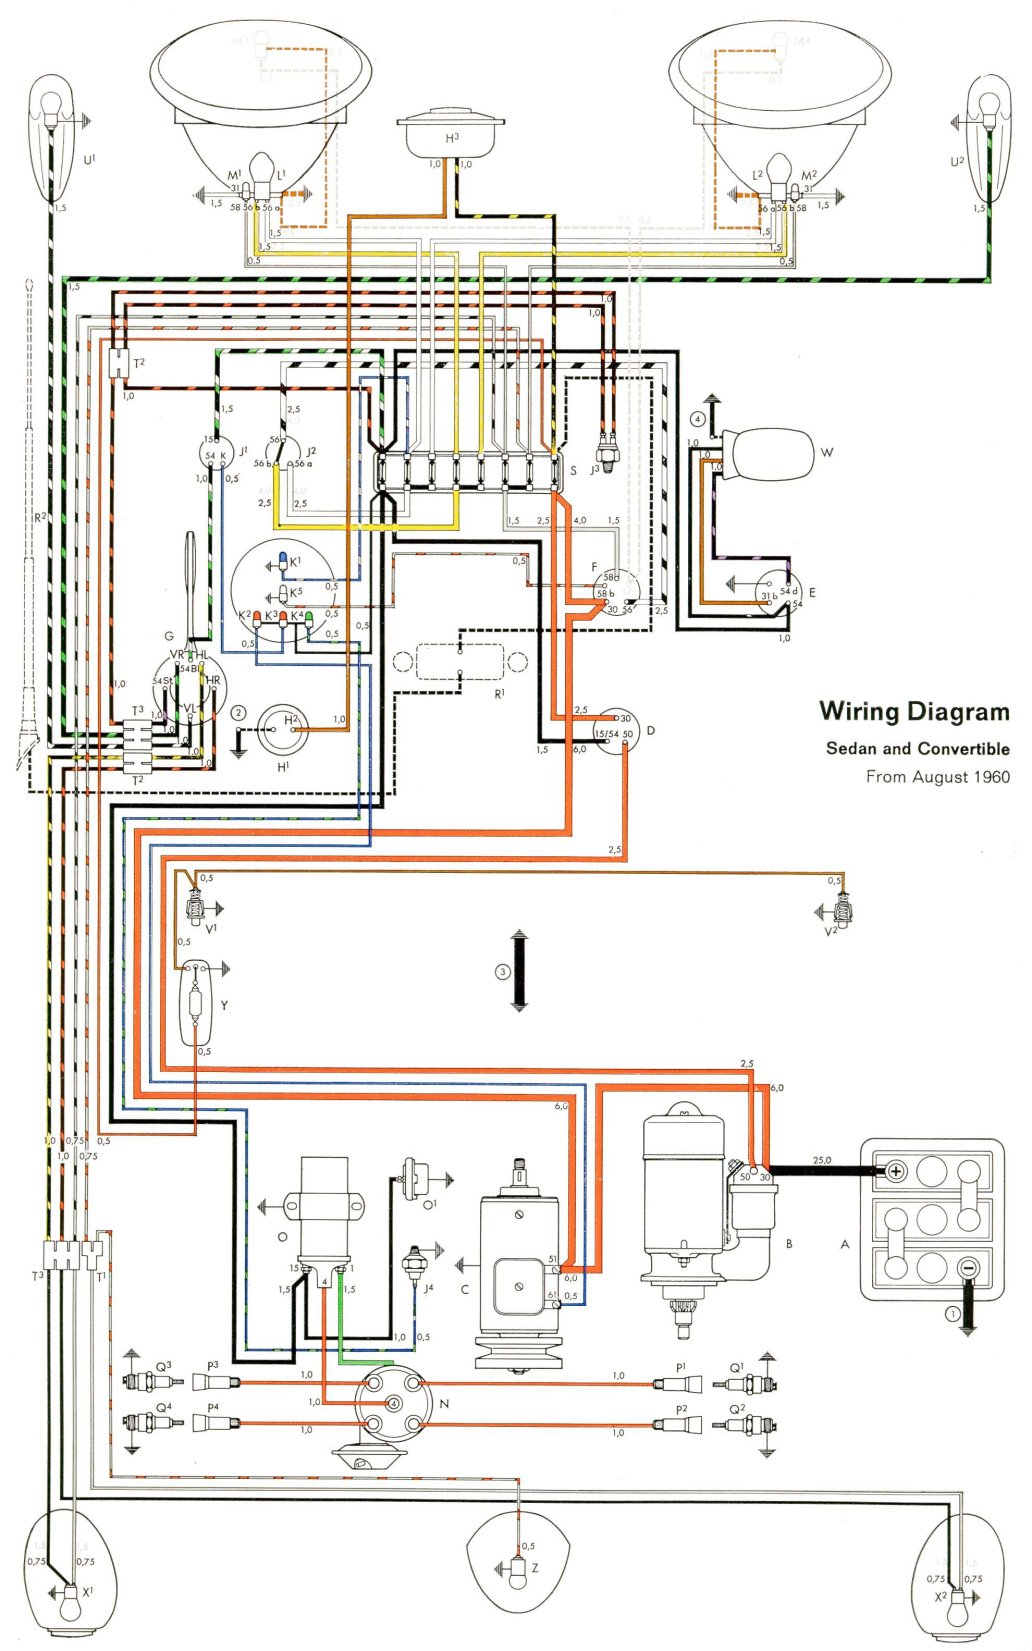 bug_61 1961 beetle wiring diagram thegoldenbug com vw alternator wiring harness at n-0.co